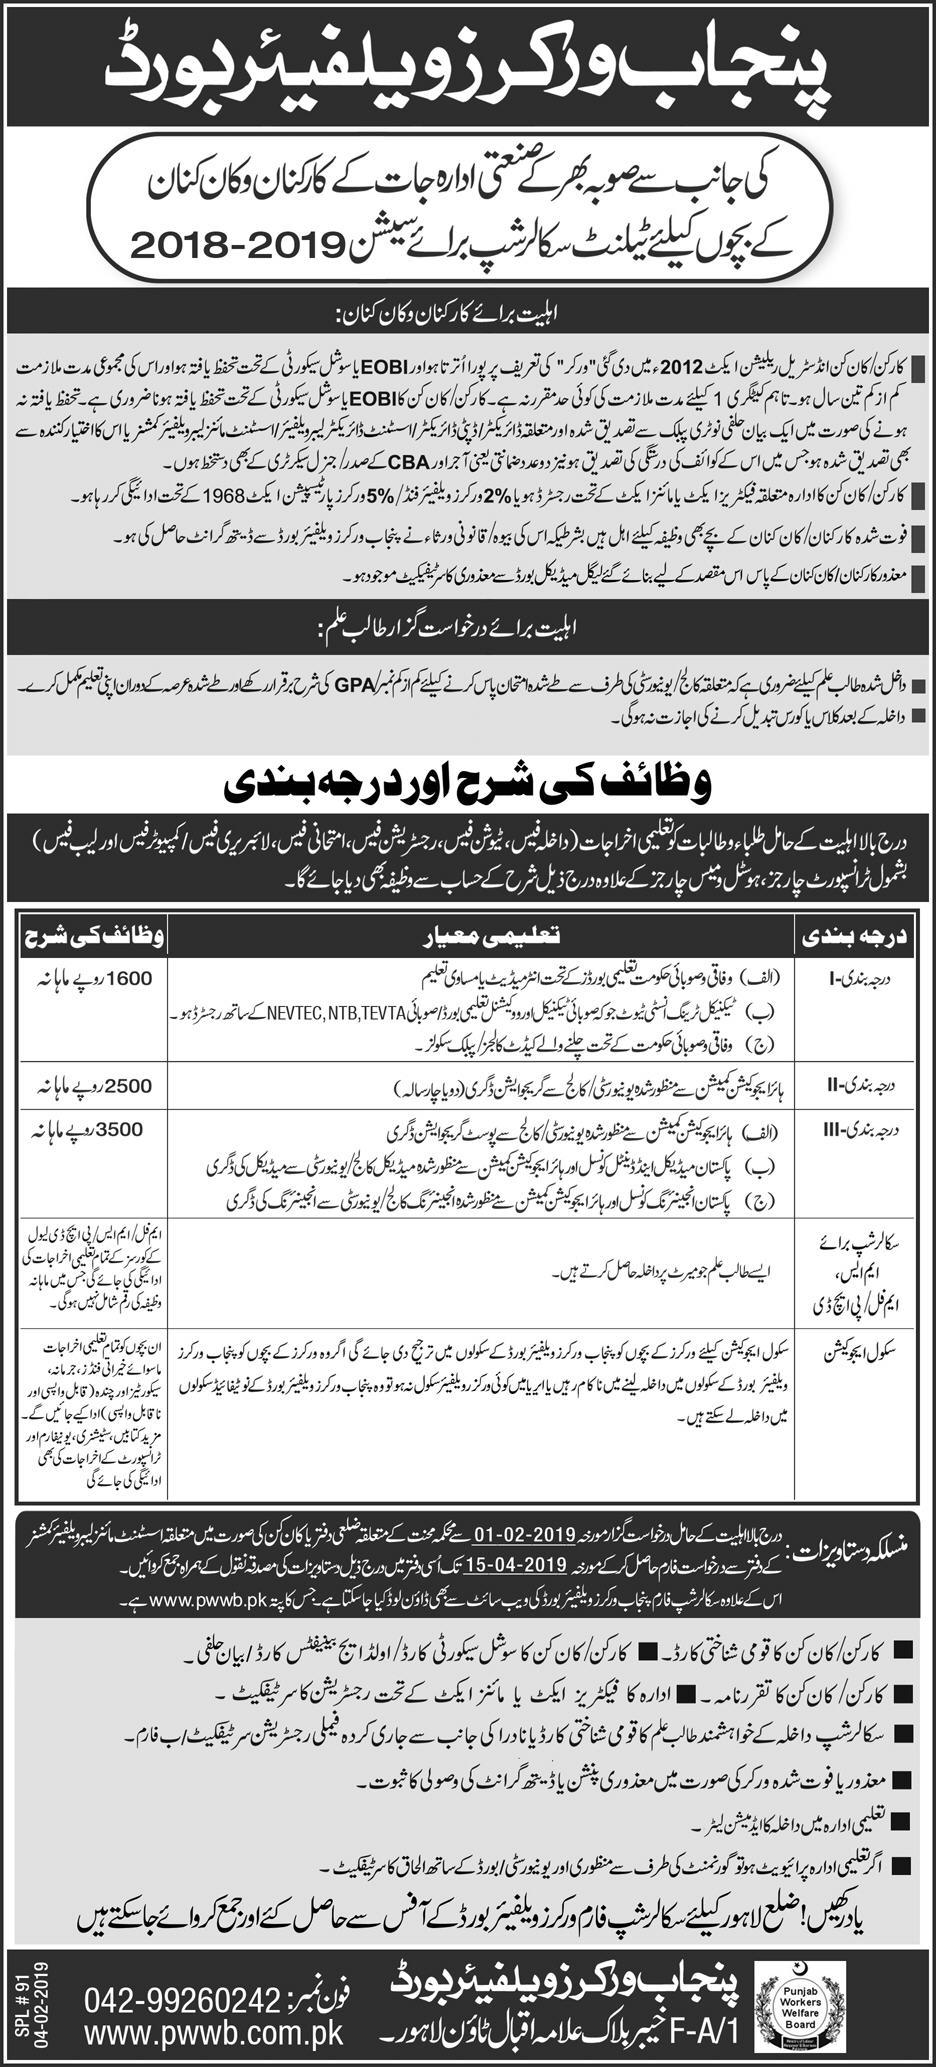 Punjab Workers Welfare Board Talent Scholarship 2019 Form